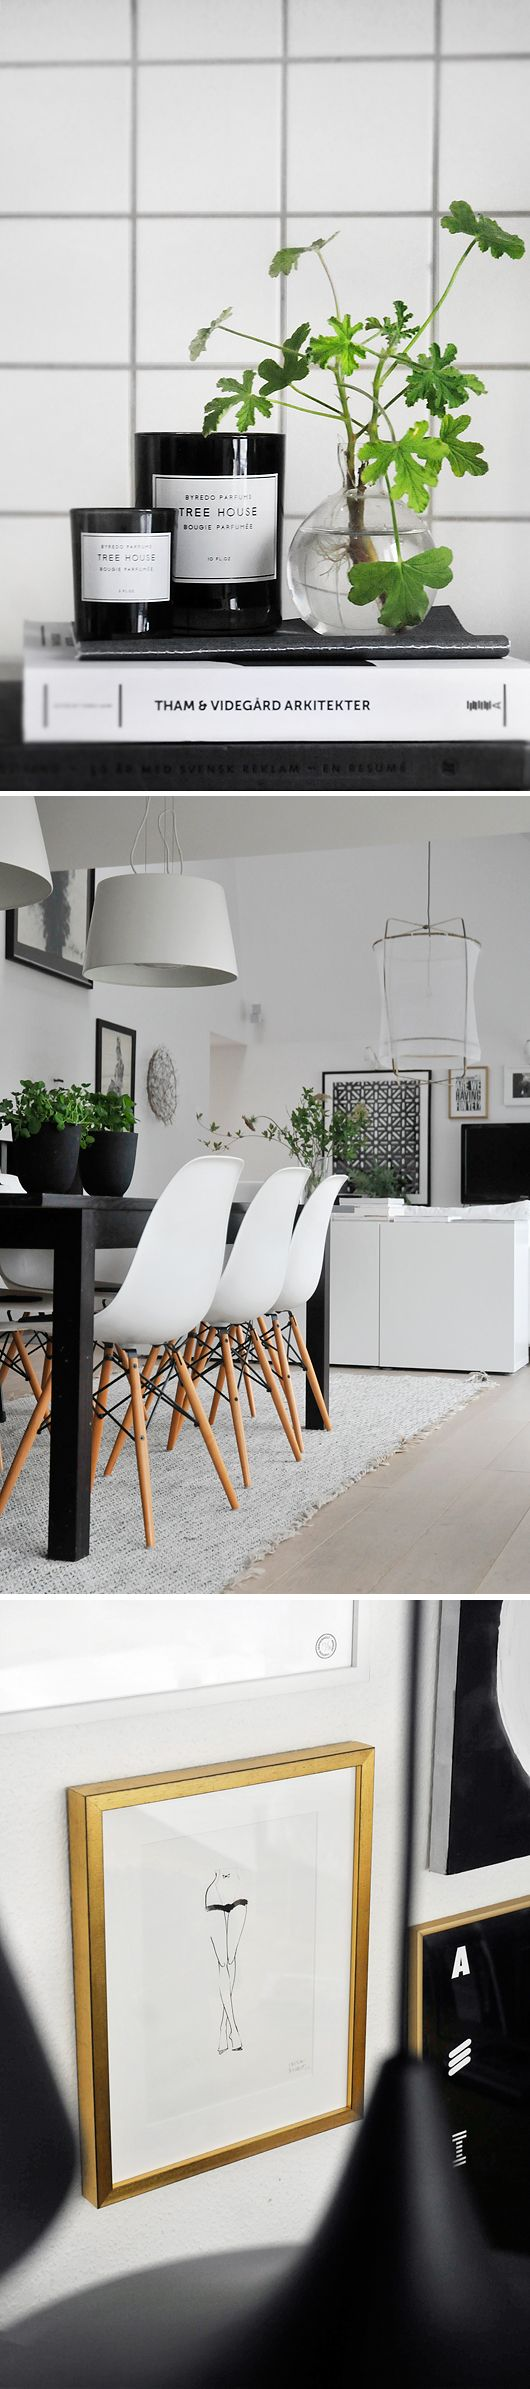 Love these Eames chairs and this greeny inside thing is growing on me!  $99 | The Truman Dining chair in white | image from: http://trendenser.se/2012/may/  http://www.sleekmodernfurniture.com/truman-side-chair-white.html